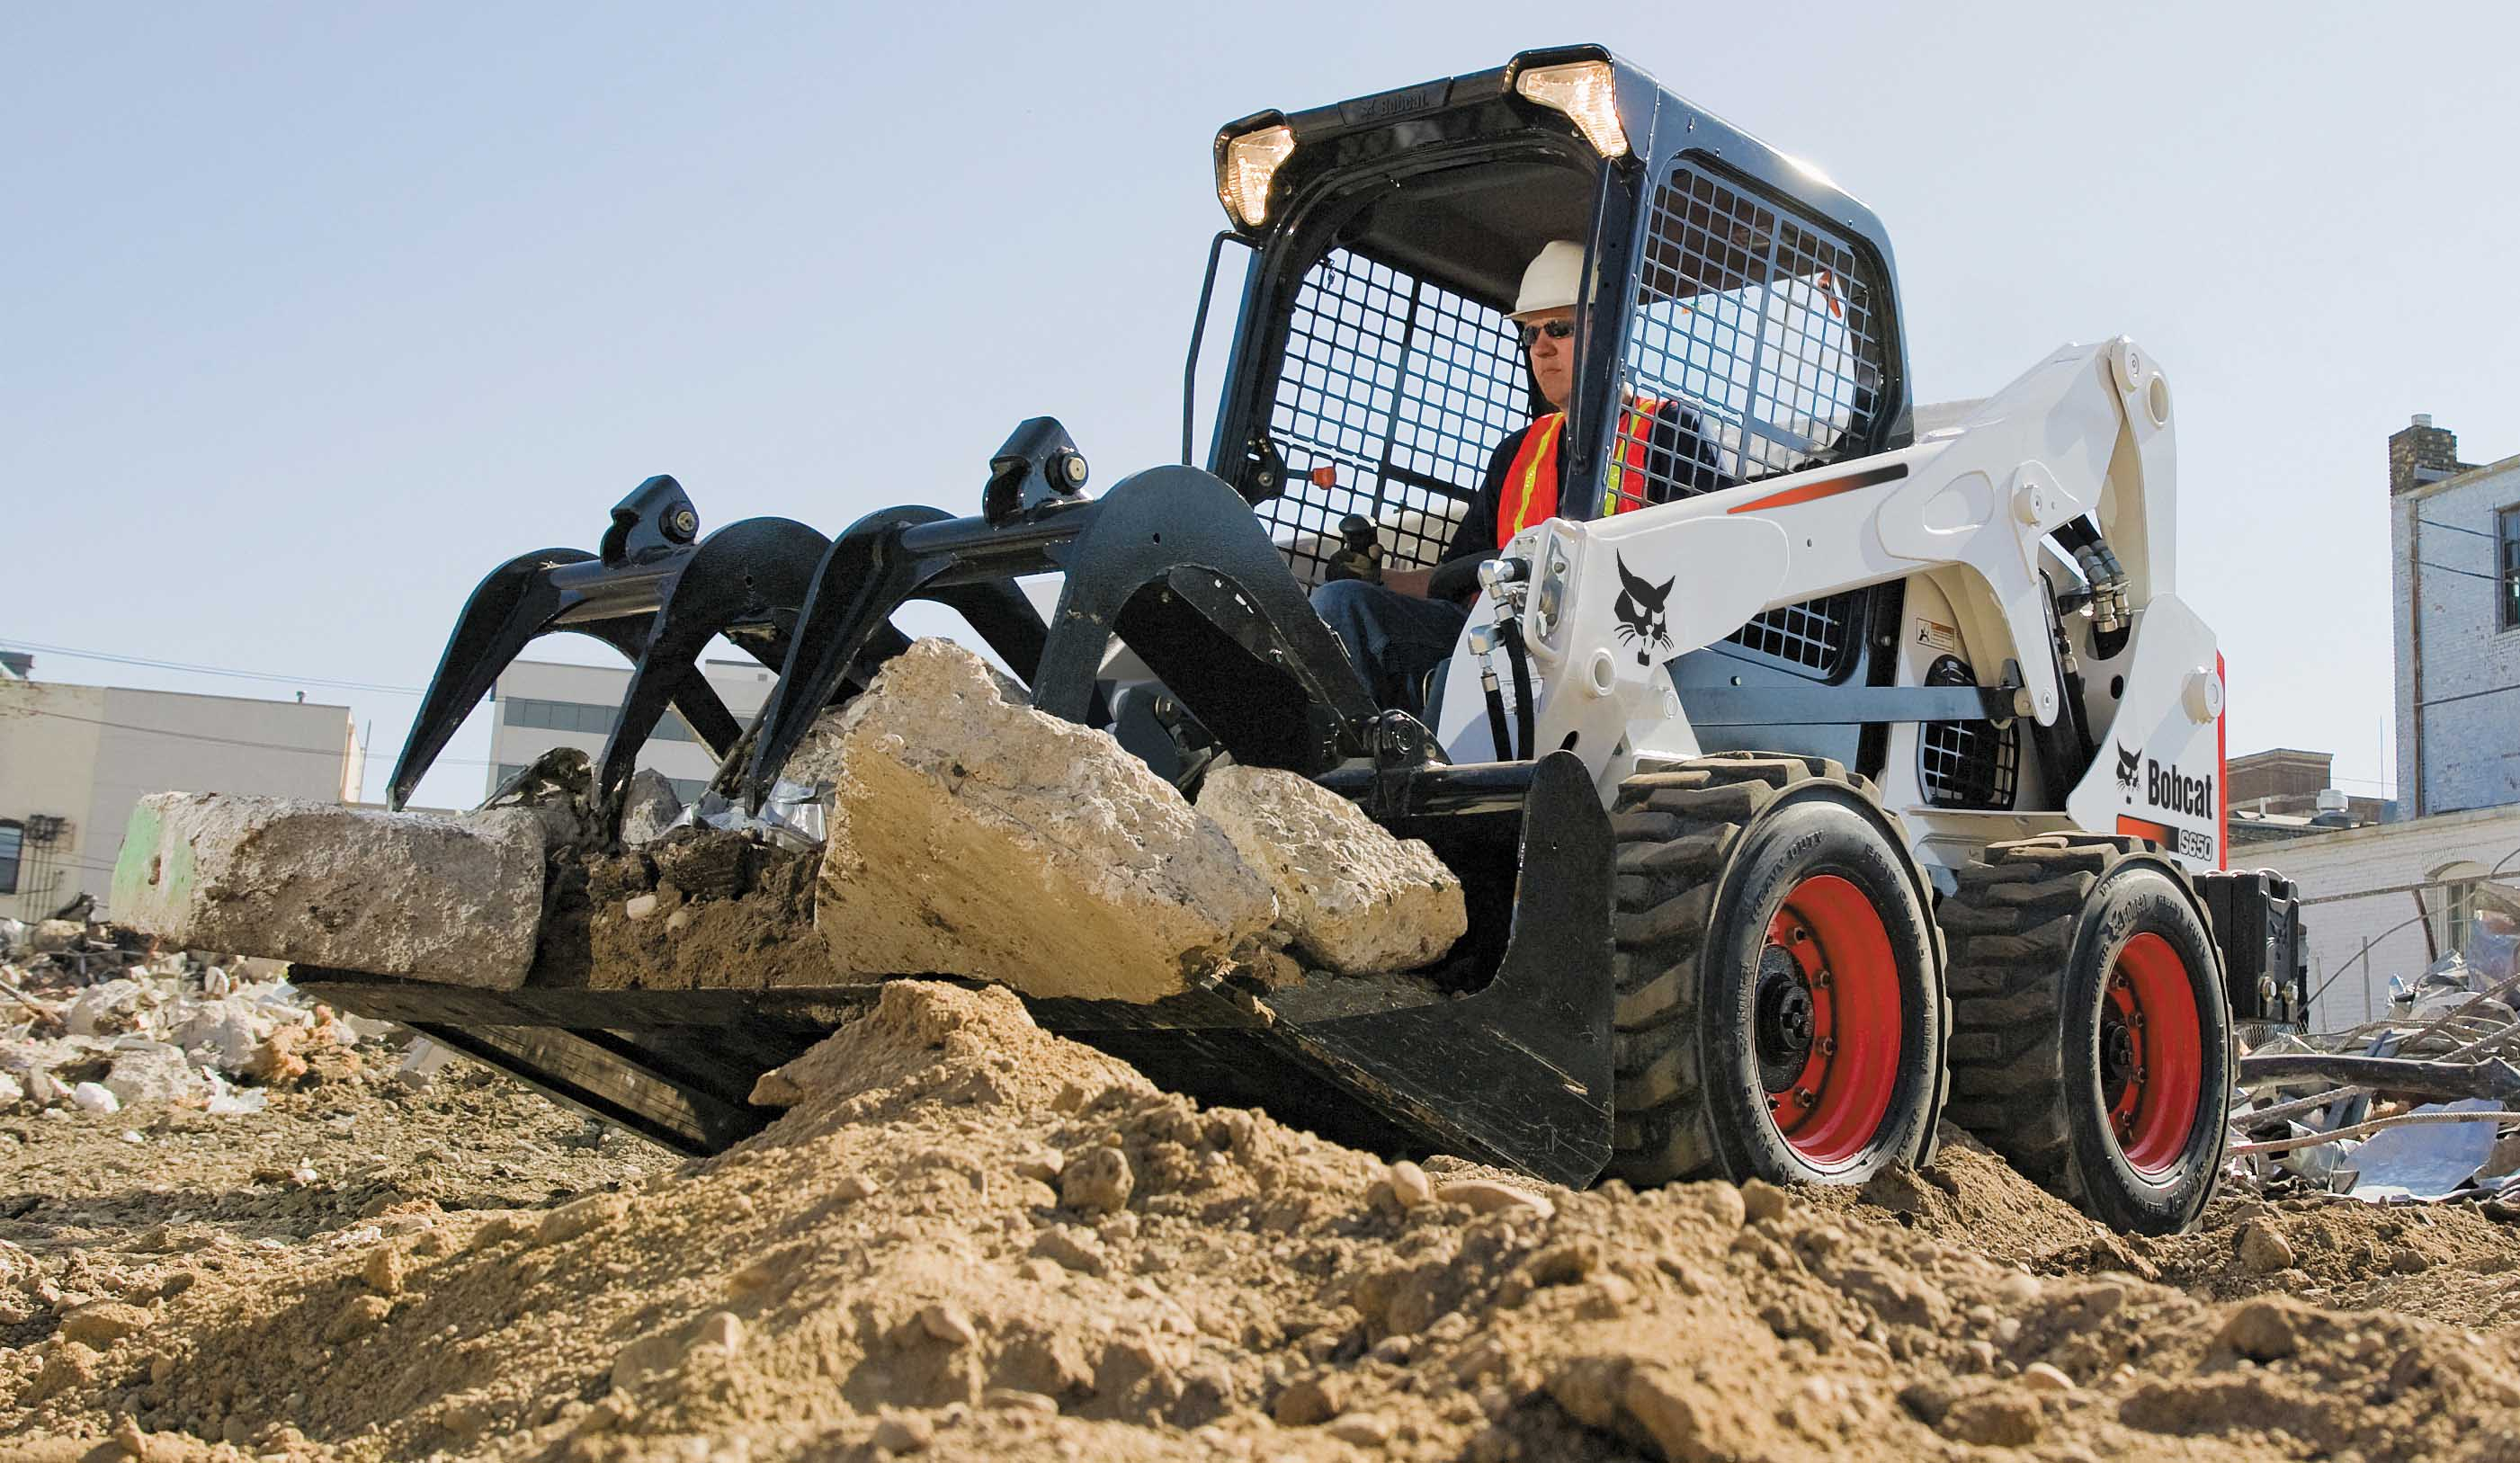 What does workers compensation cover?